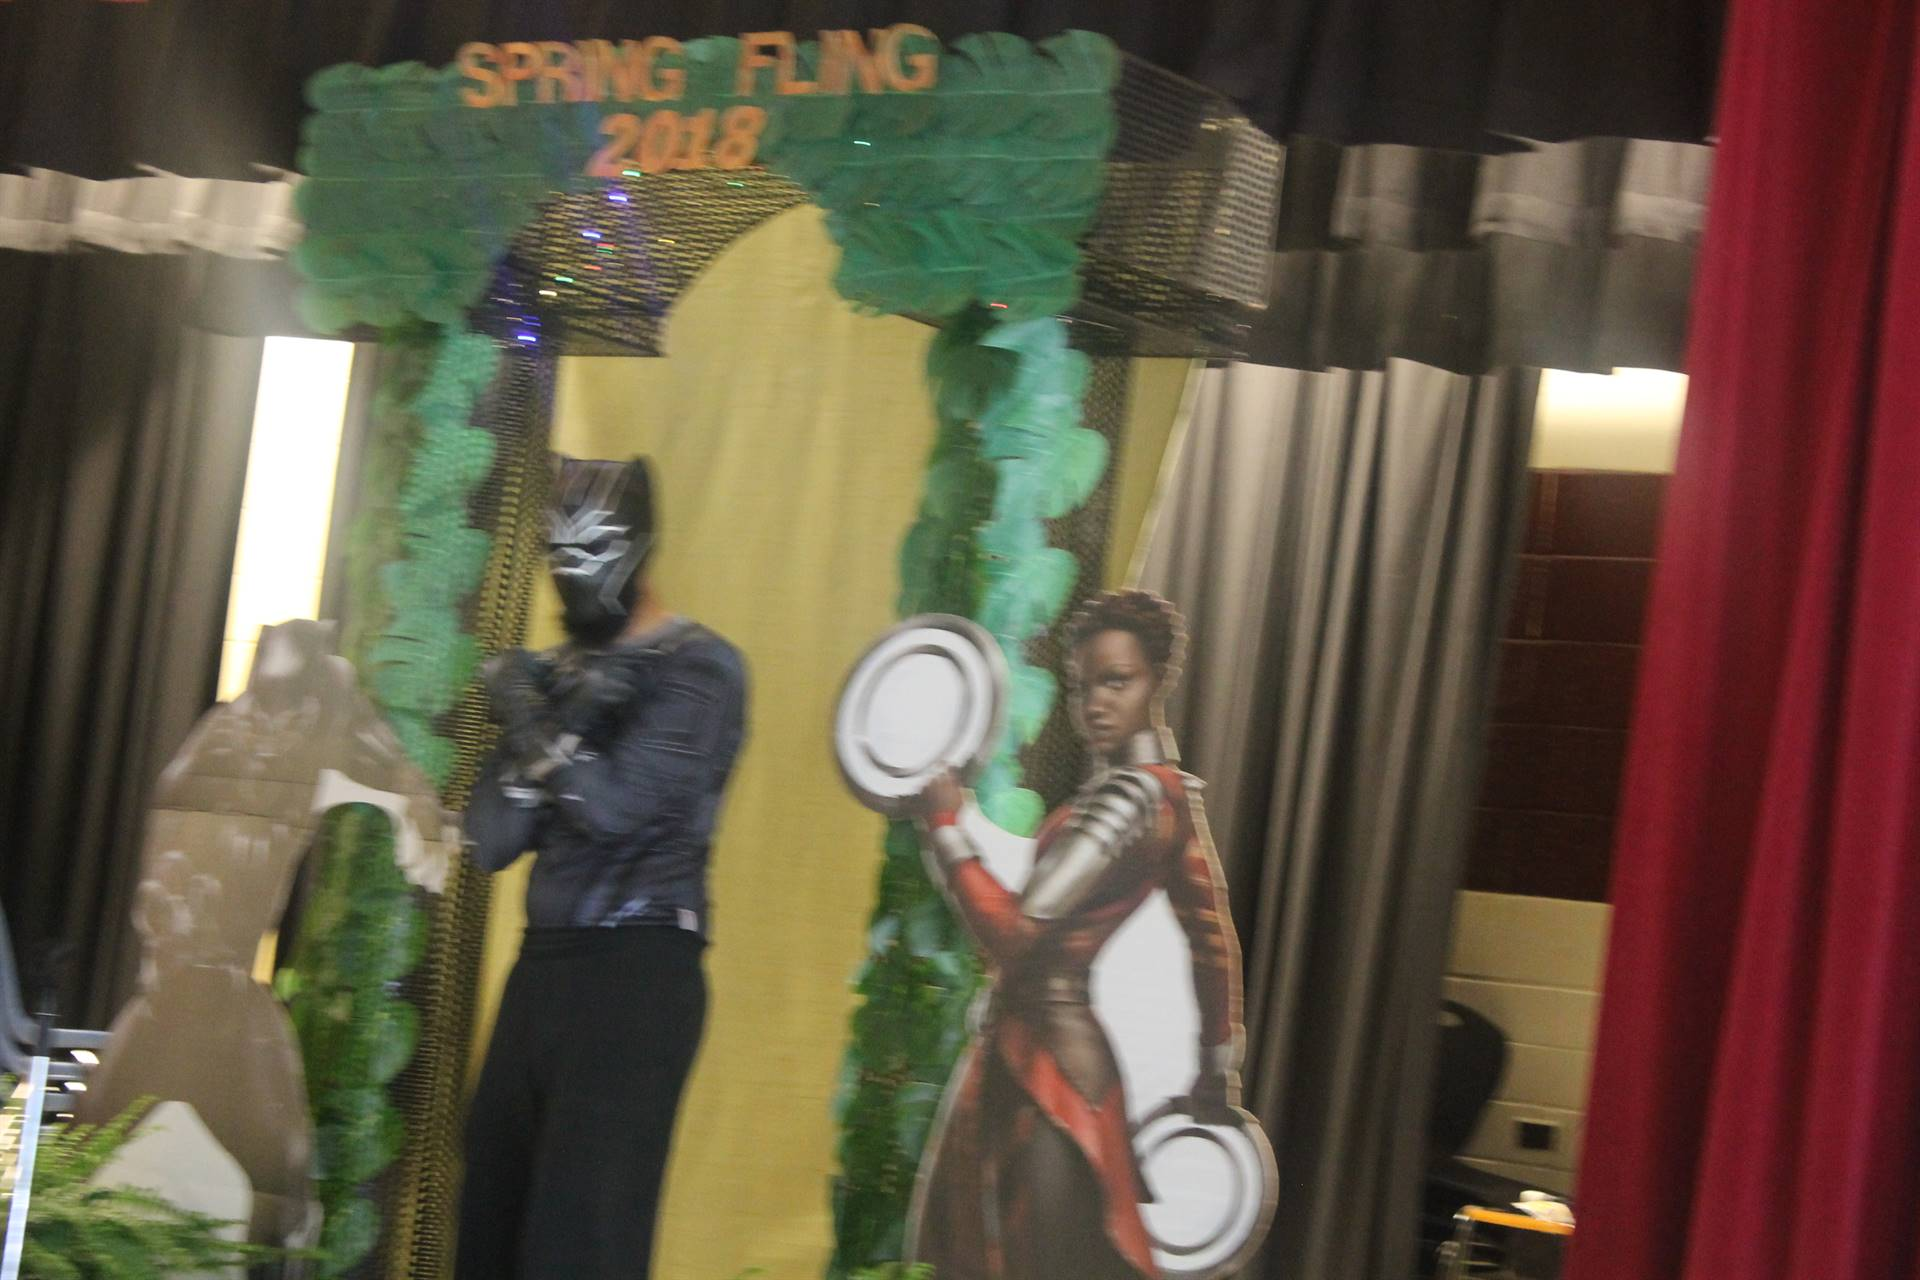 Mr. Ford as Black Panther